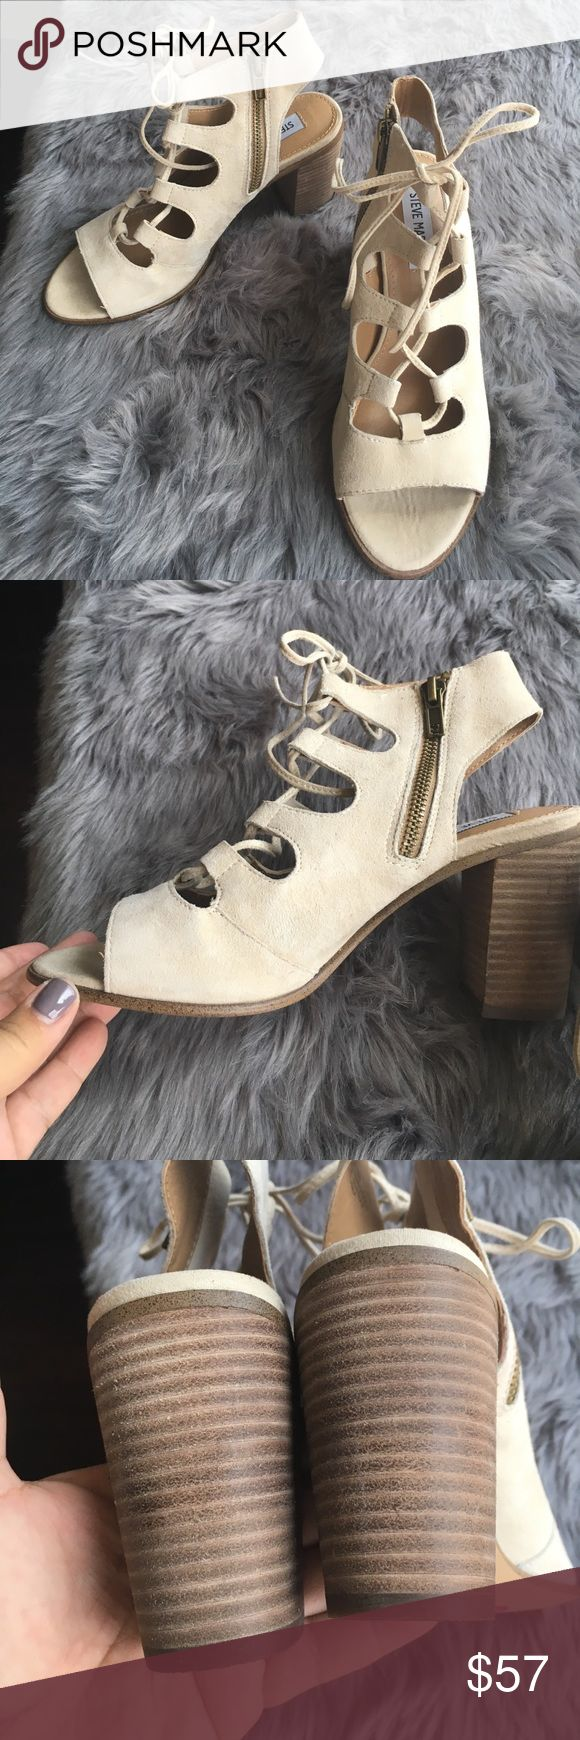 """BNWT Steve Madden Lace-up Ivory Suede Heels size 7 Gorgeous! On Trend! Lace up cream Suede Steve Maddens feature a 3"""" stacked wood heel, side zipper and Suede ties up the front (great for adjusting for width!) Perfect for all your summer outfits. These shoes are brand new, never worn and still have the tag on the bottom. Size 7. Steve Madden Shoes"""